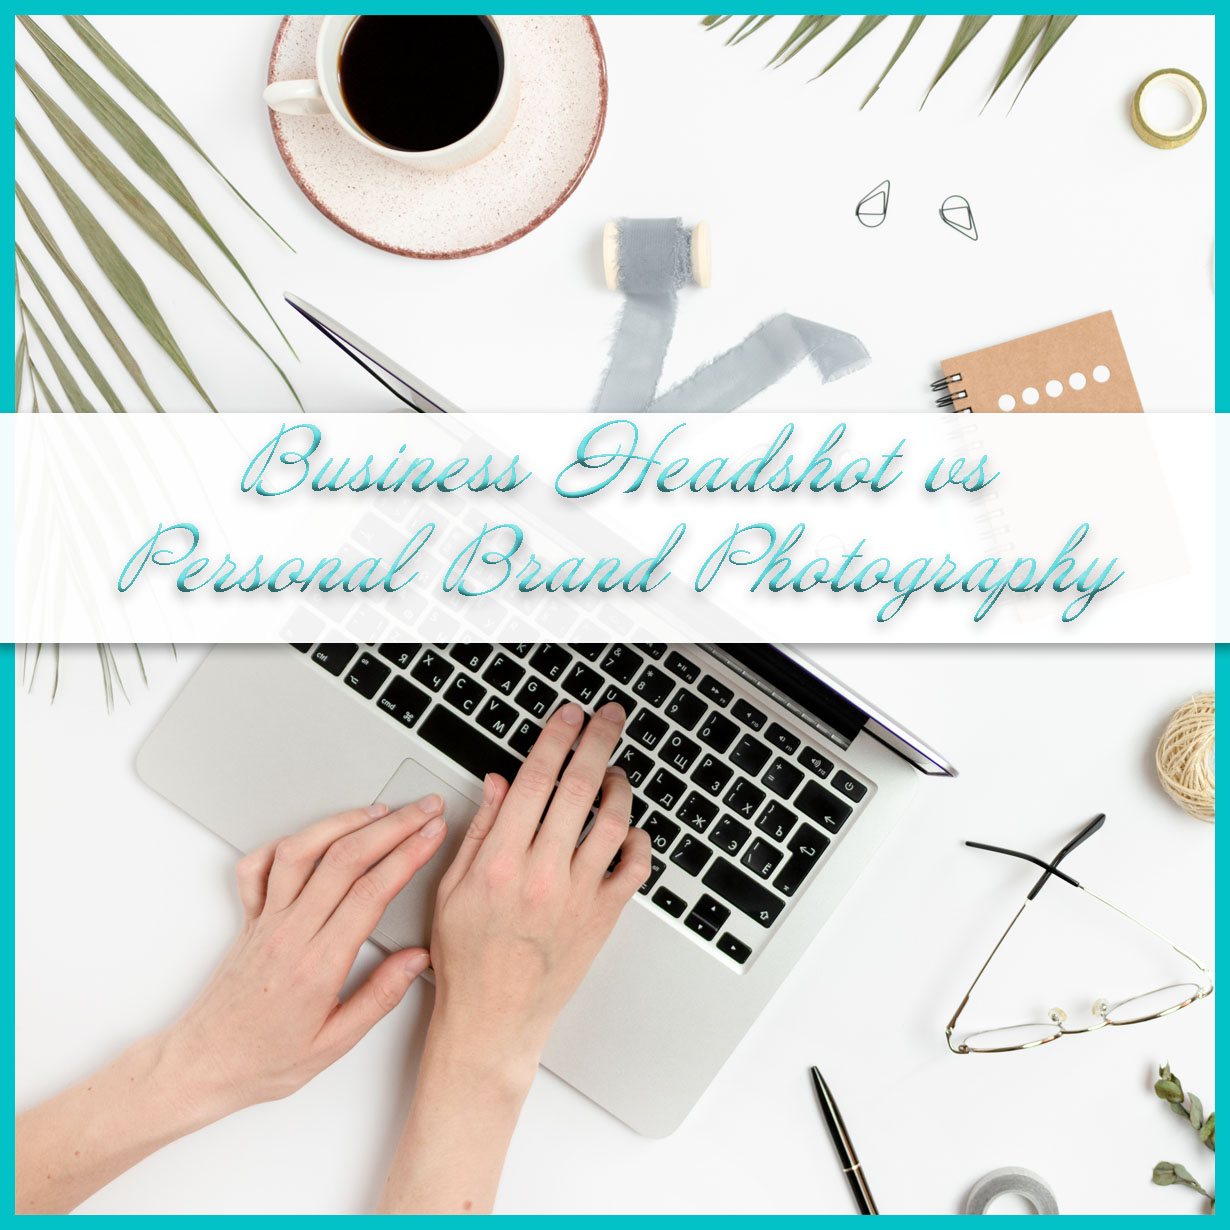 Business Headshots vs Personal Brand Photography